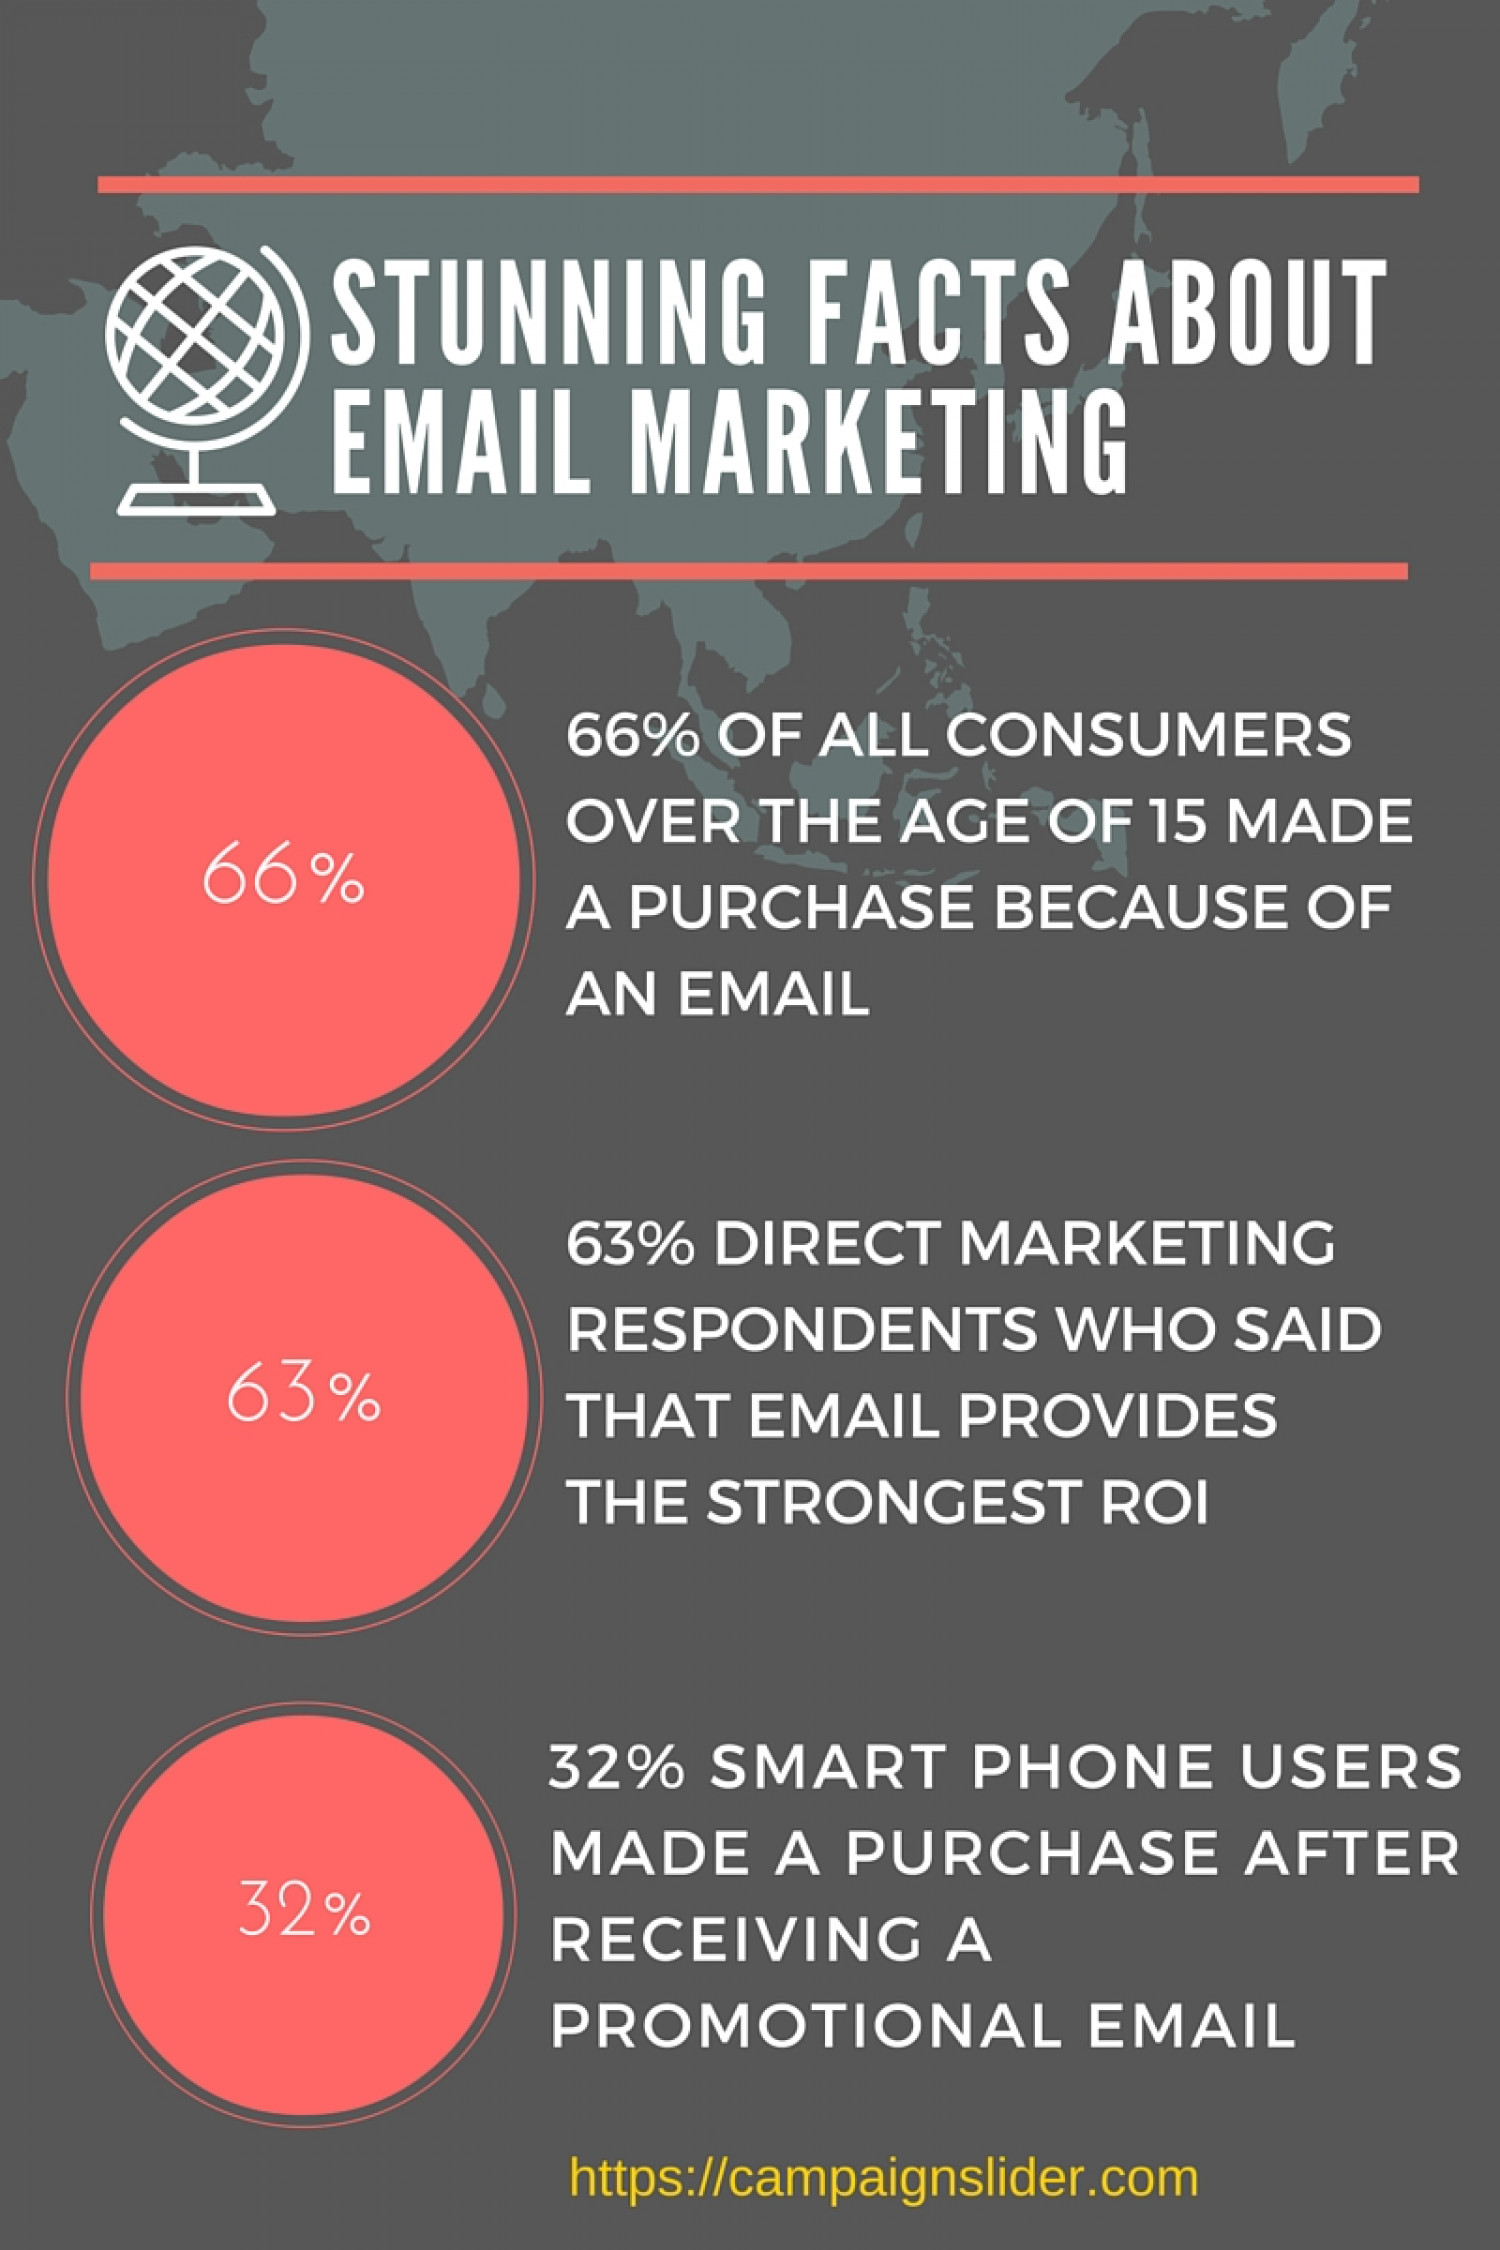 Stunning Facts About email Marketing Infographic